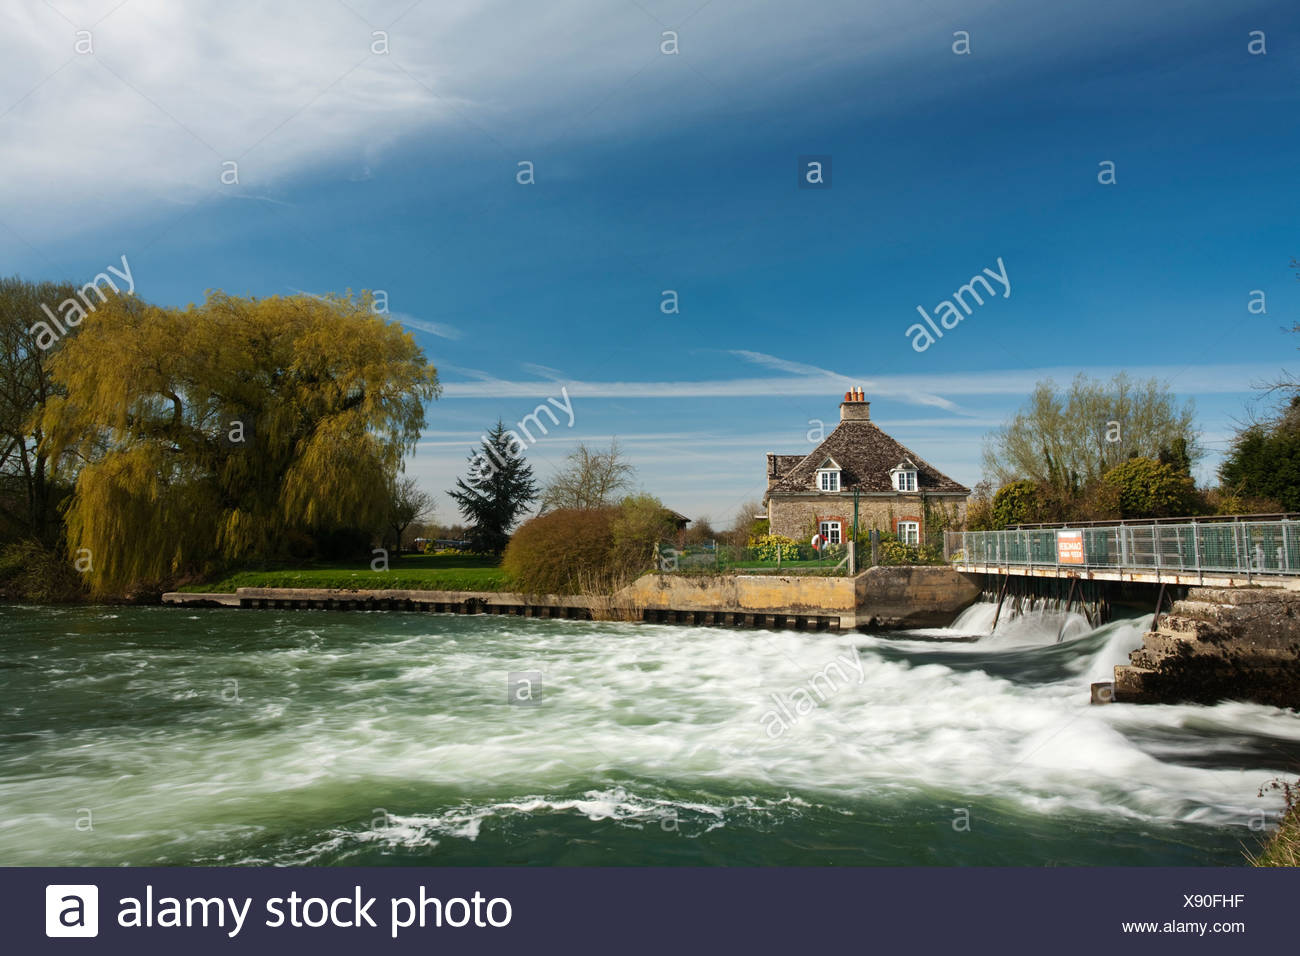 Rushey Weir on the River Thames in Oxfordshire, Uk - Stock Image